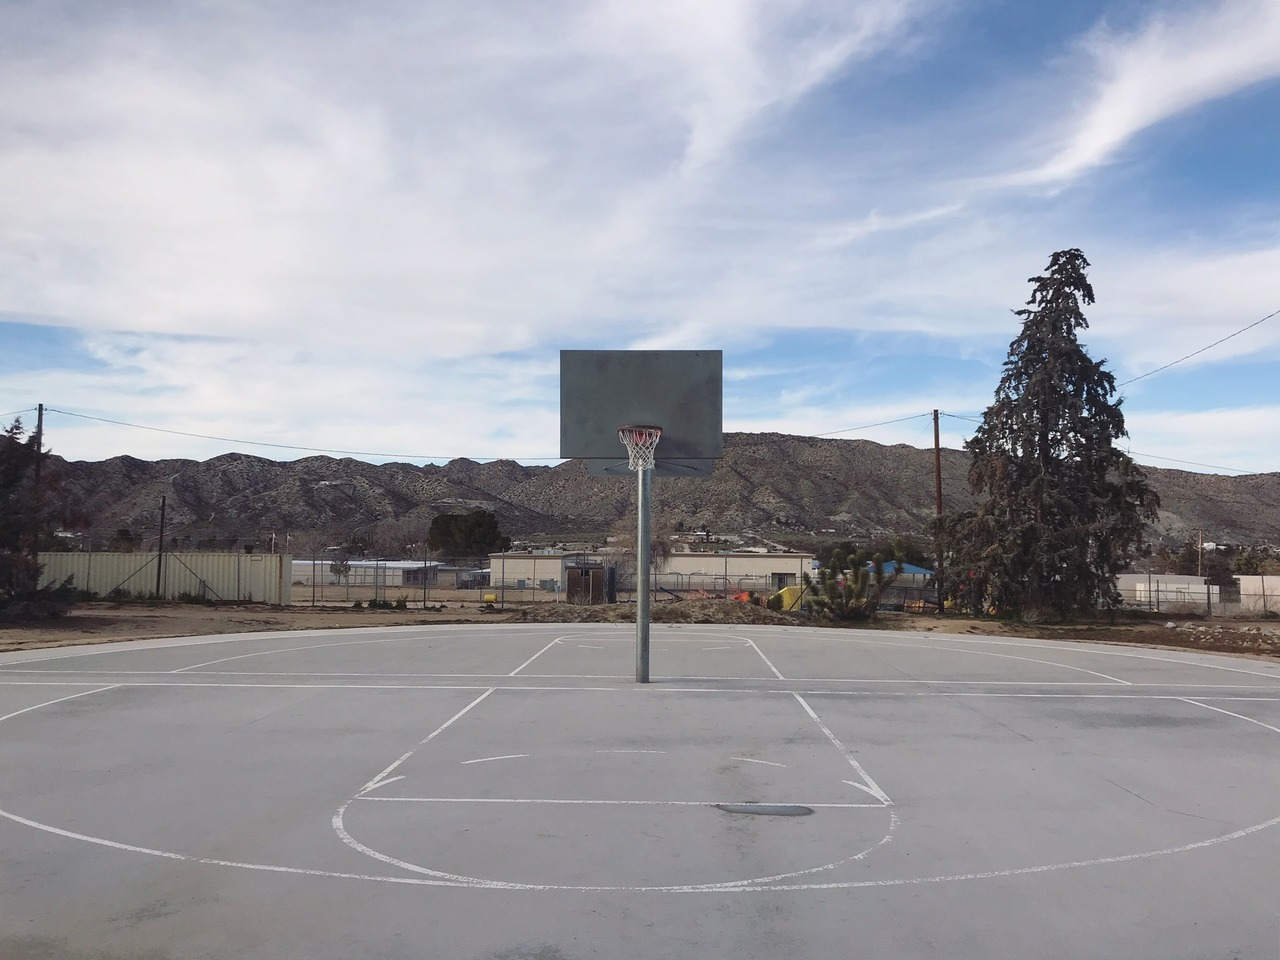 Basketball courts near Palm Springs